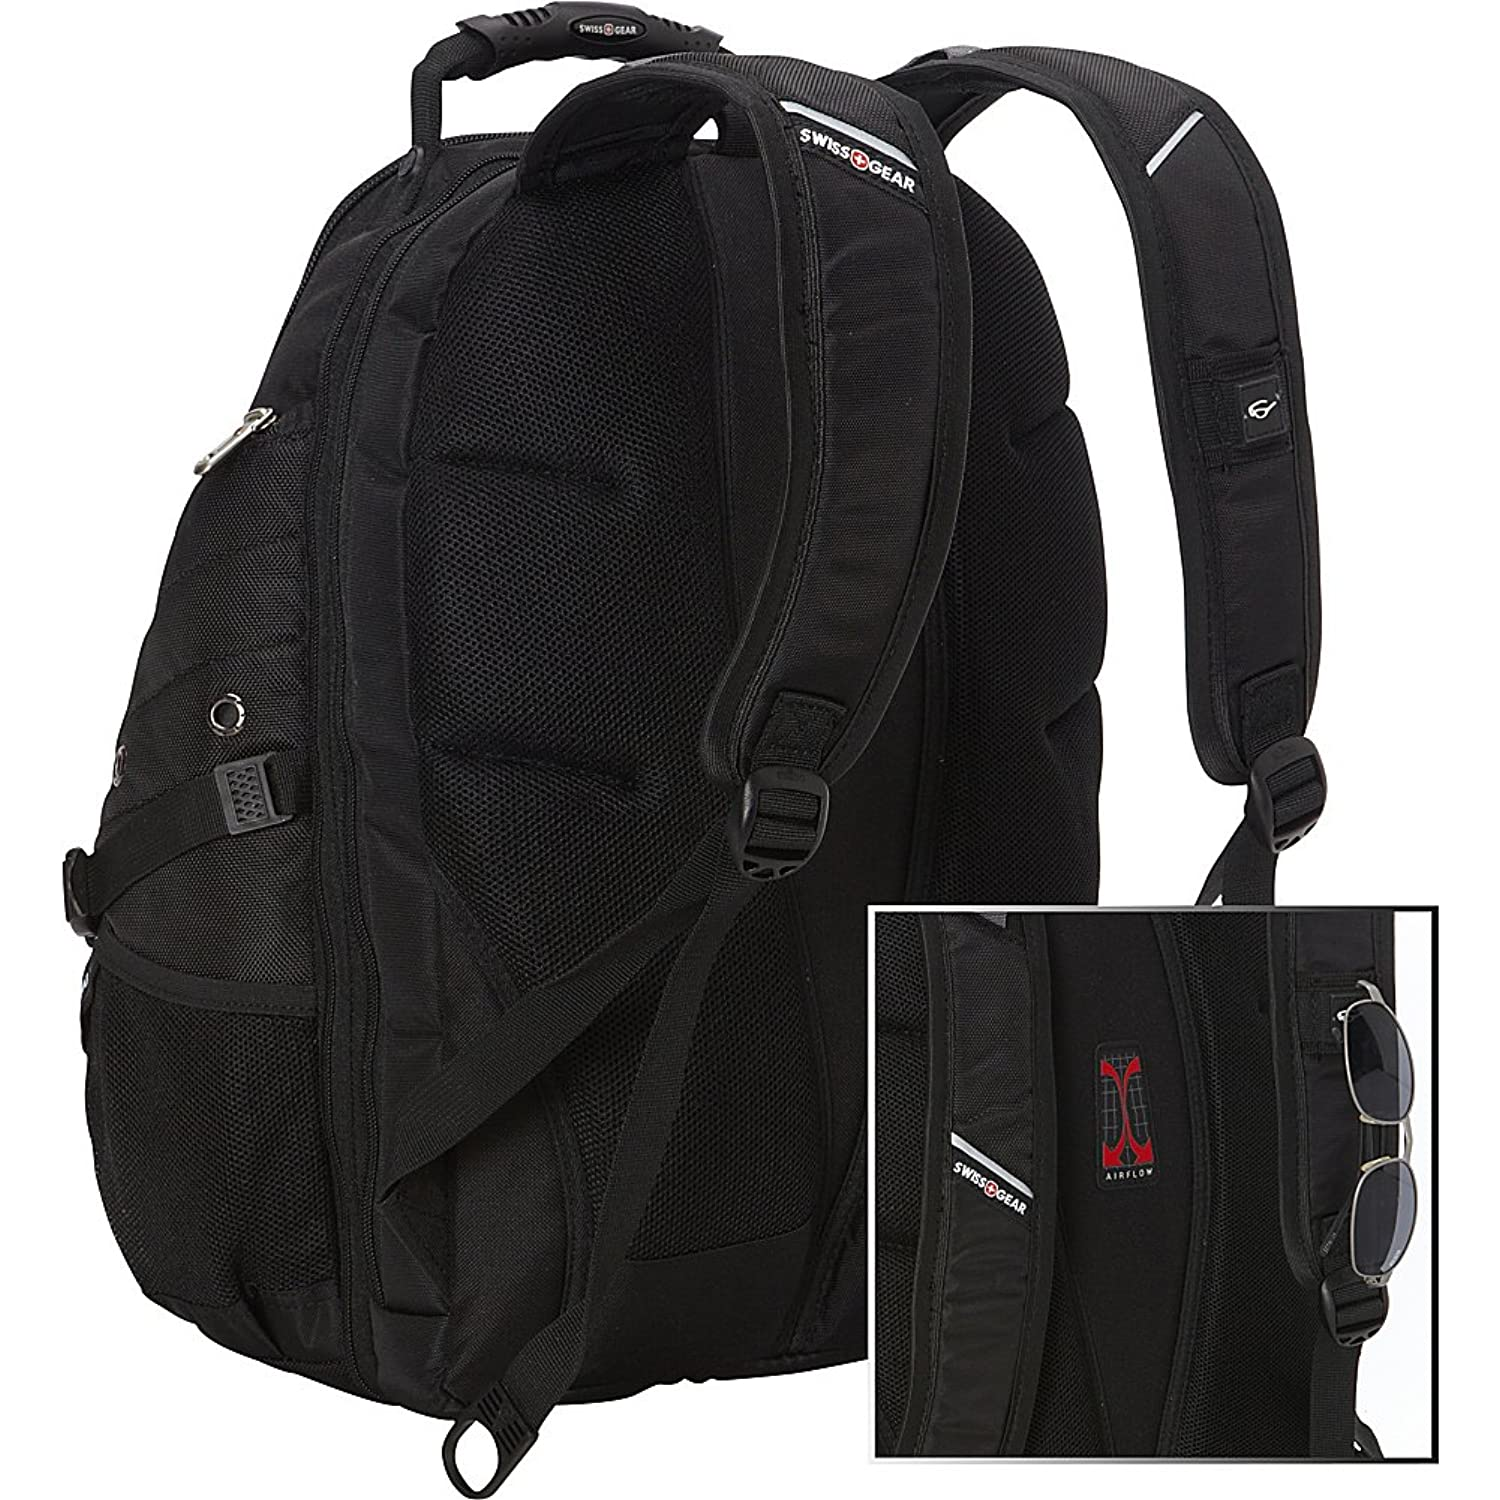 Amazon.com: SwissGear 1900 Scansmart TSA Laptop Backpack - Black ...